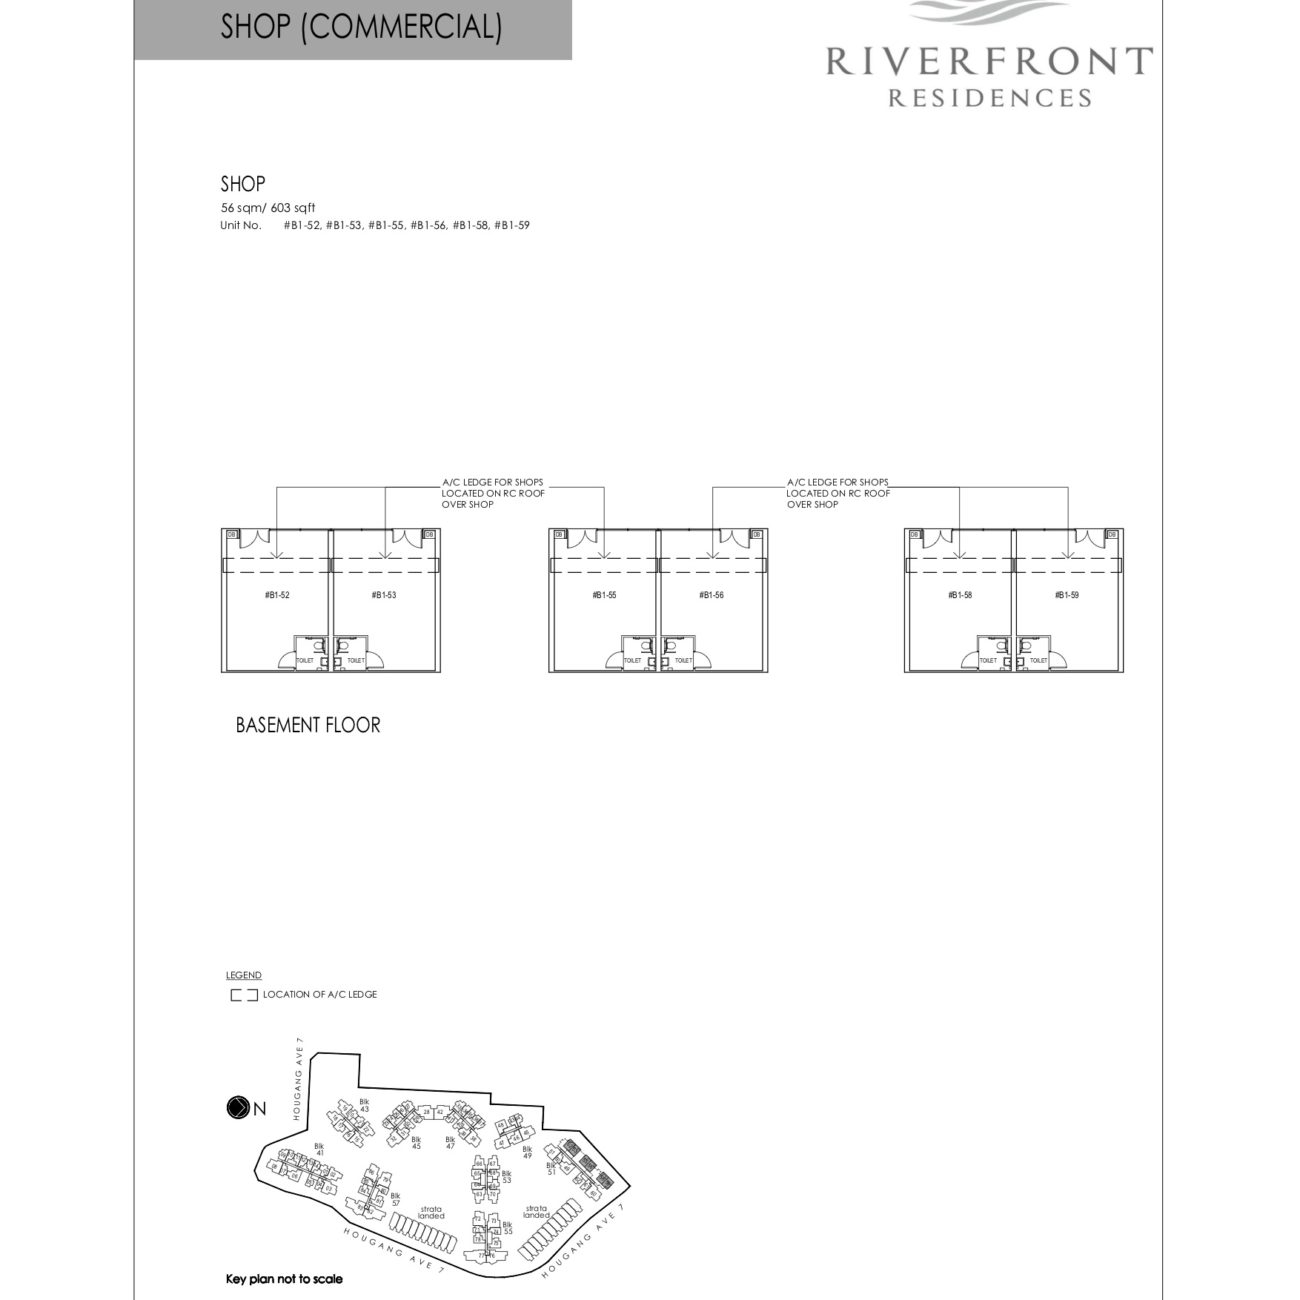 riverfront-residences-floorplan-commercial